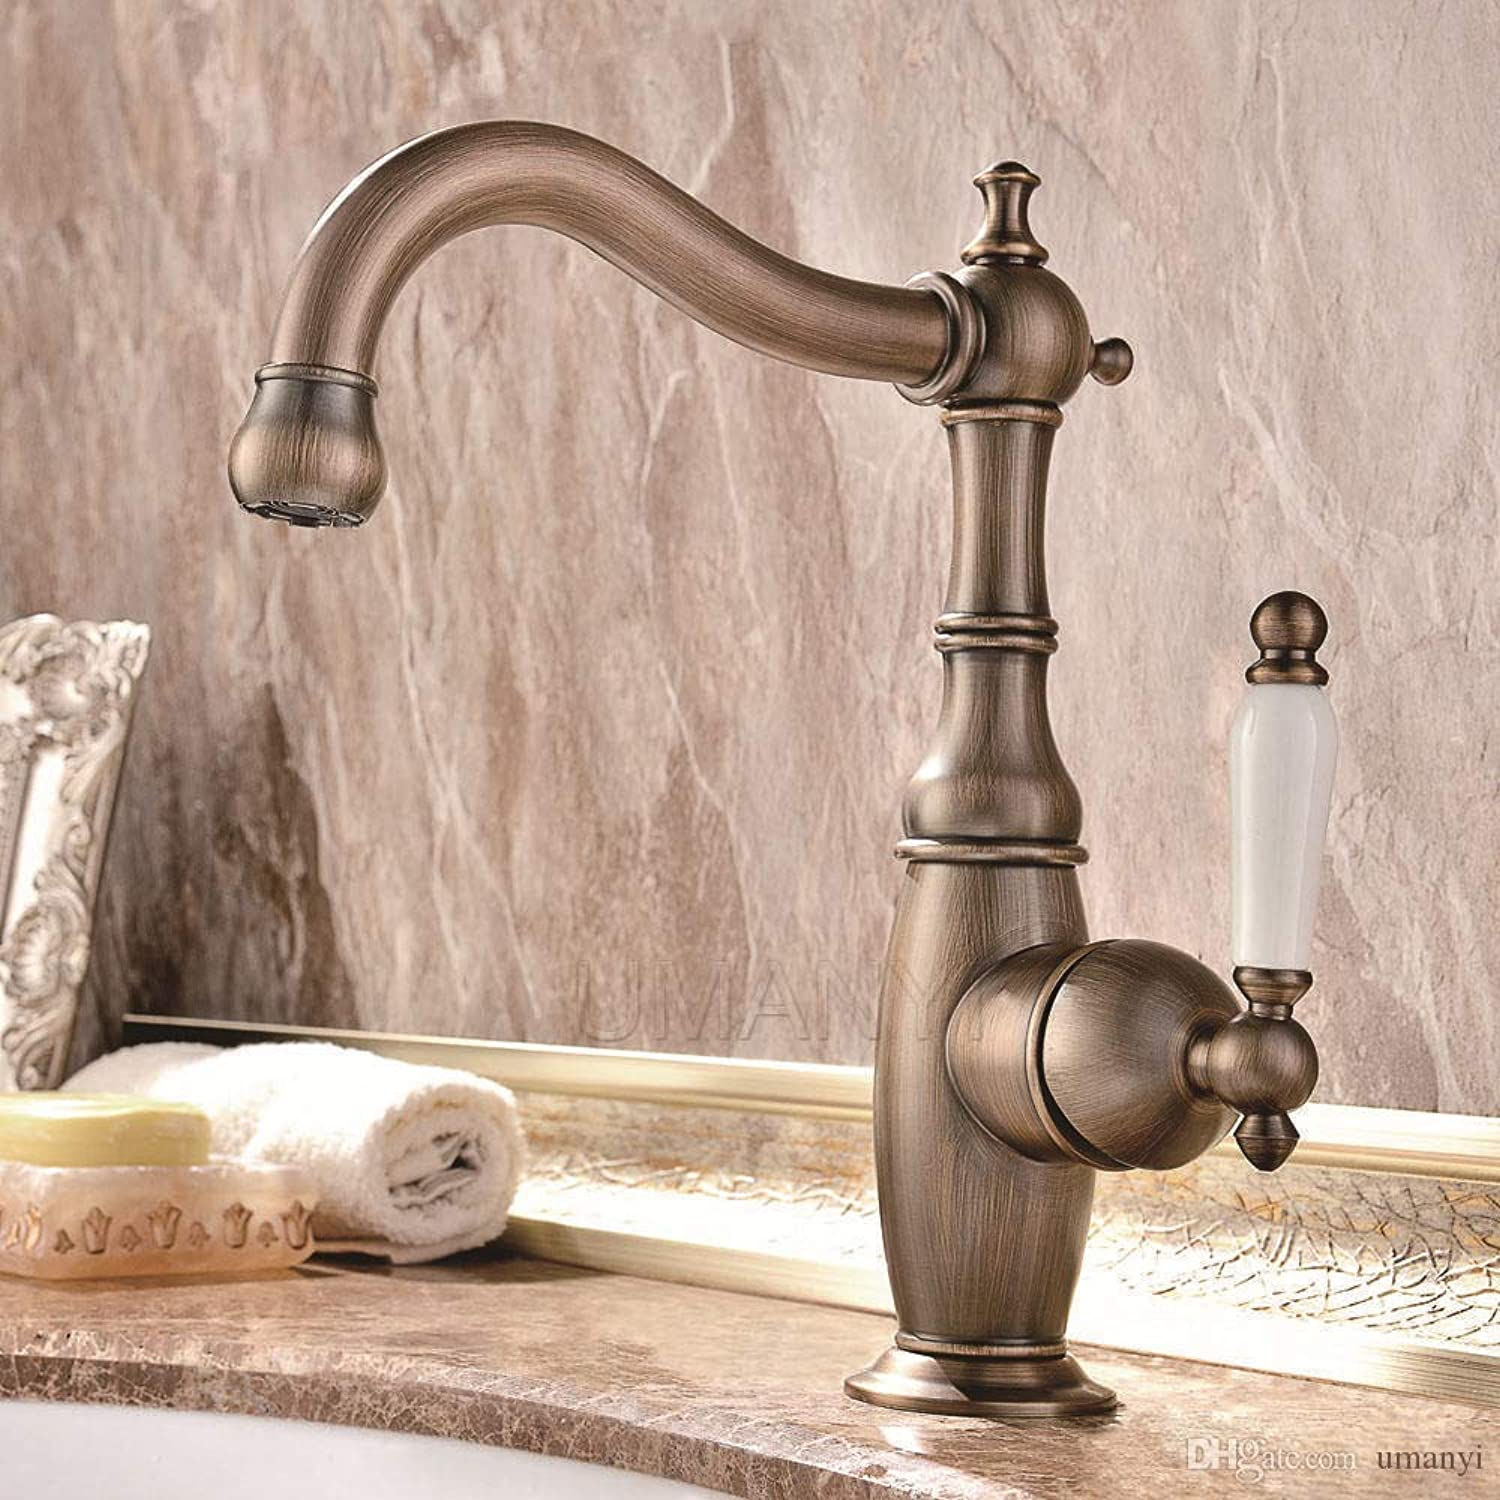 Yingsssq 360 redatable Spout Bathroom Basin Faucets Antique Brass Brushed Bronze Single Handle Deck Mounted Hot Cold Mixer Toilet Sink Taps Abmpl031 (color   -, Size   -)